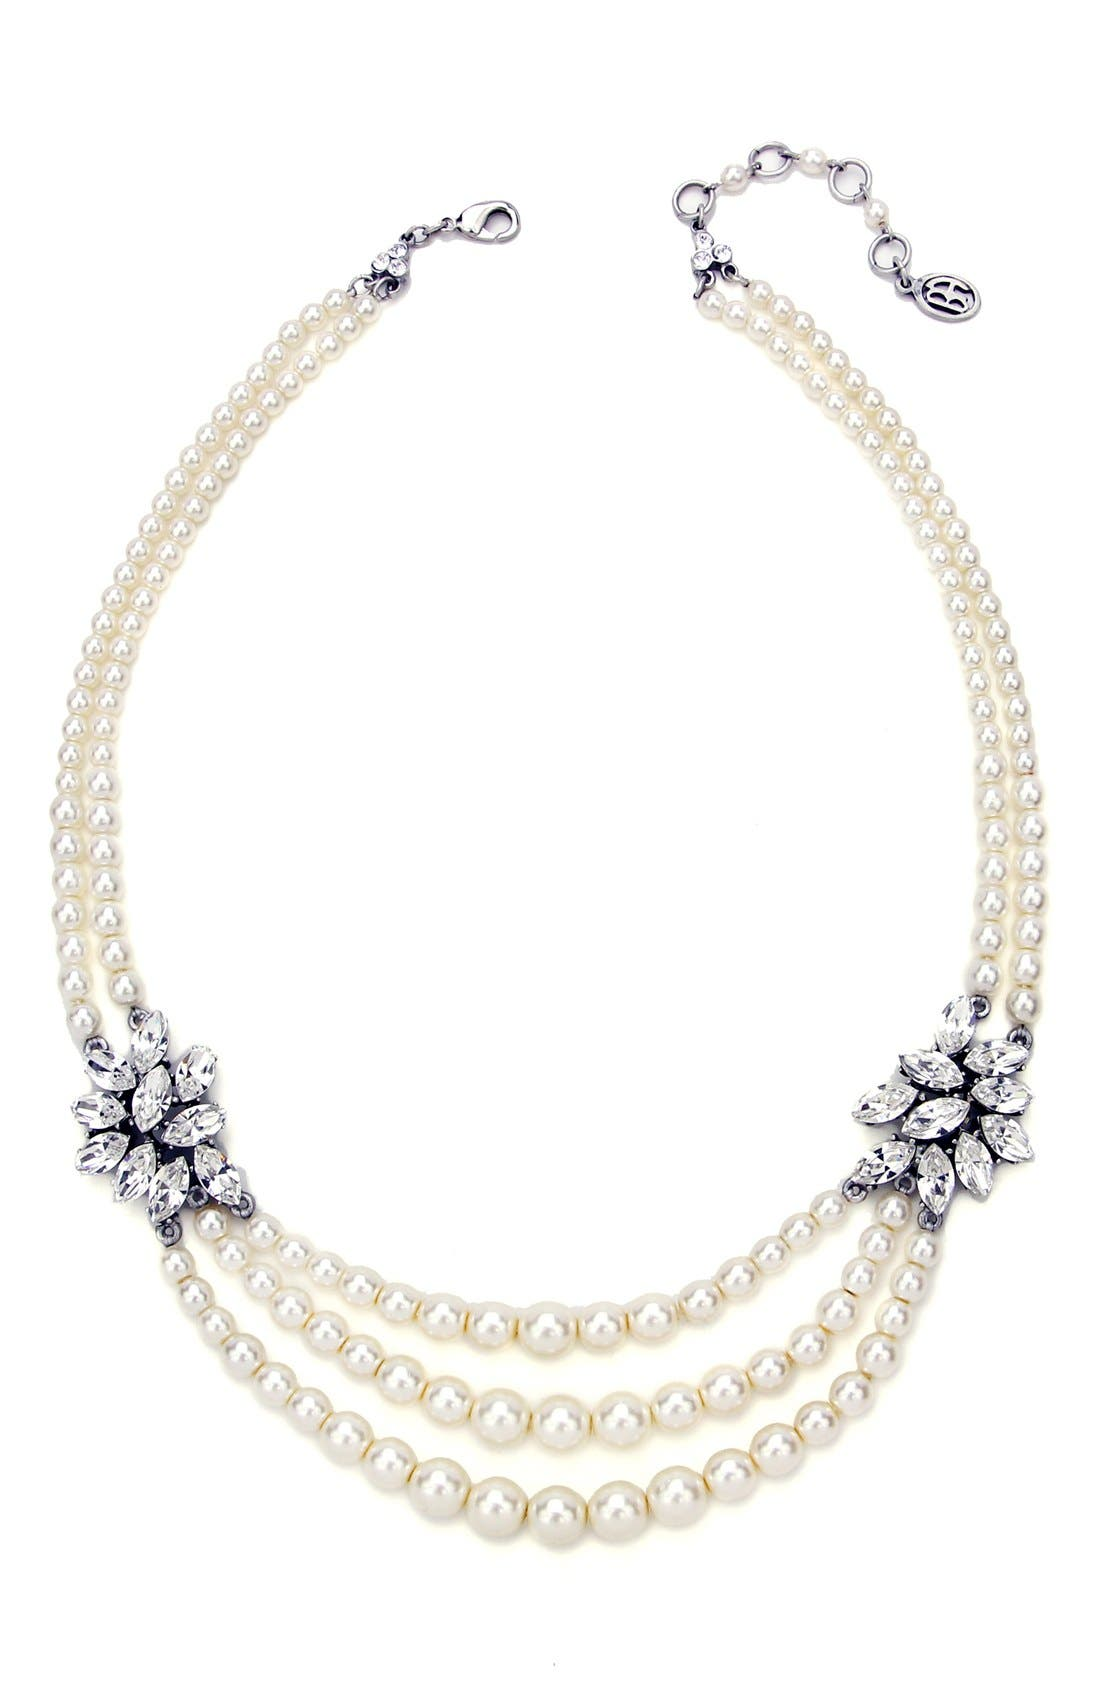 Faux Pearl & Crystal Multistrand Necklace,                             Main thumbnail 1, color,                             IVORY/ CLEAR